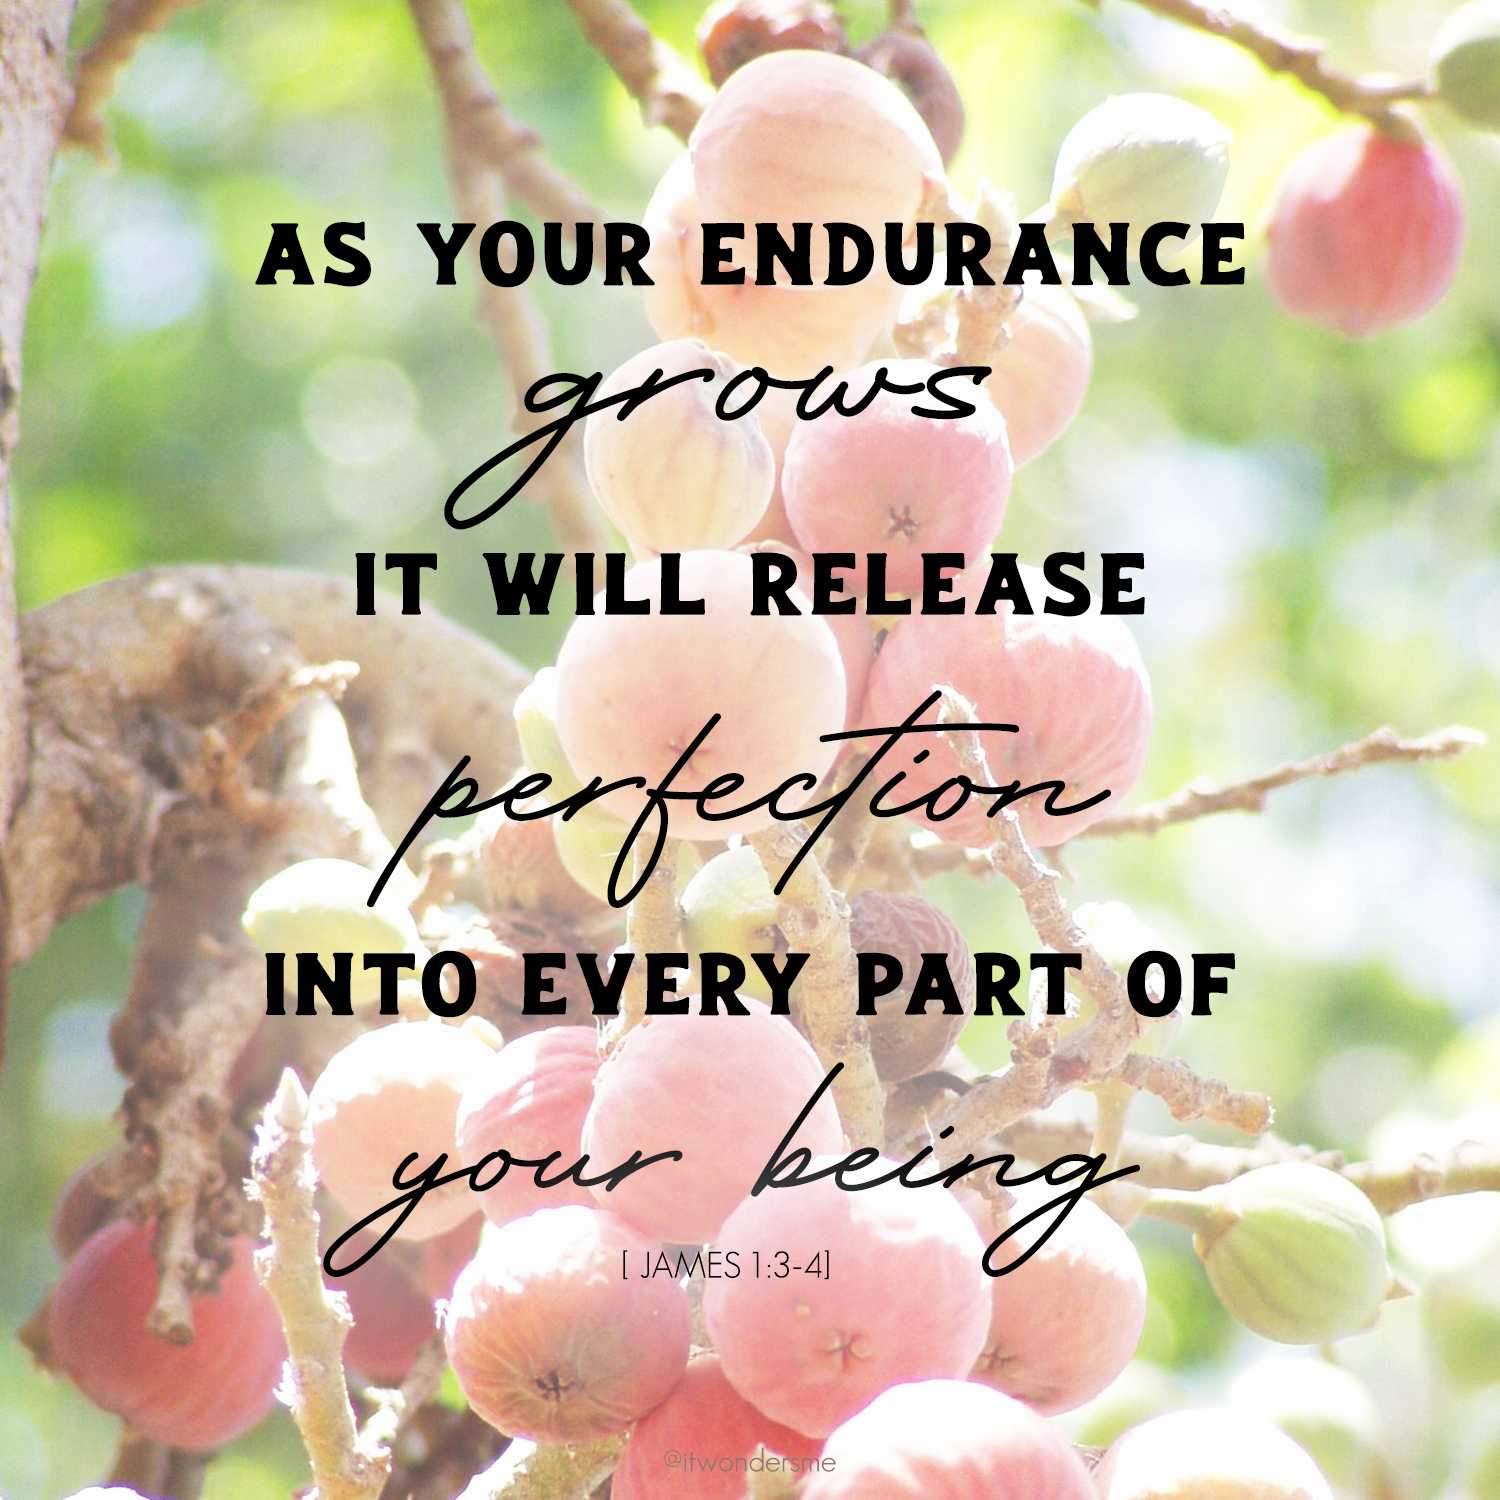 As endurance grows it releases perfection